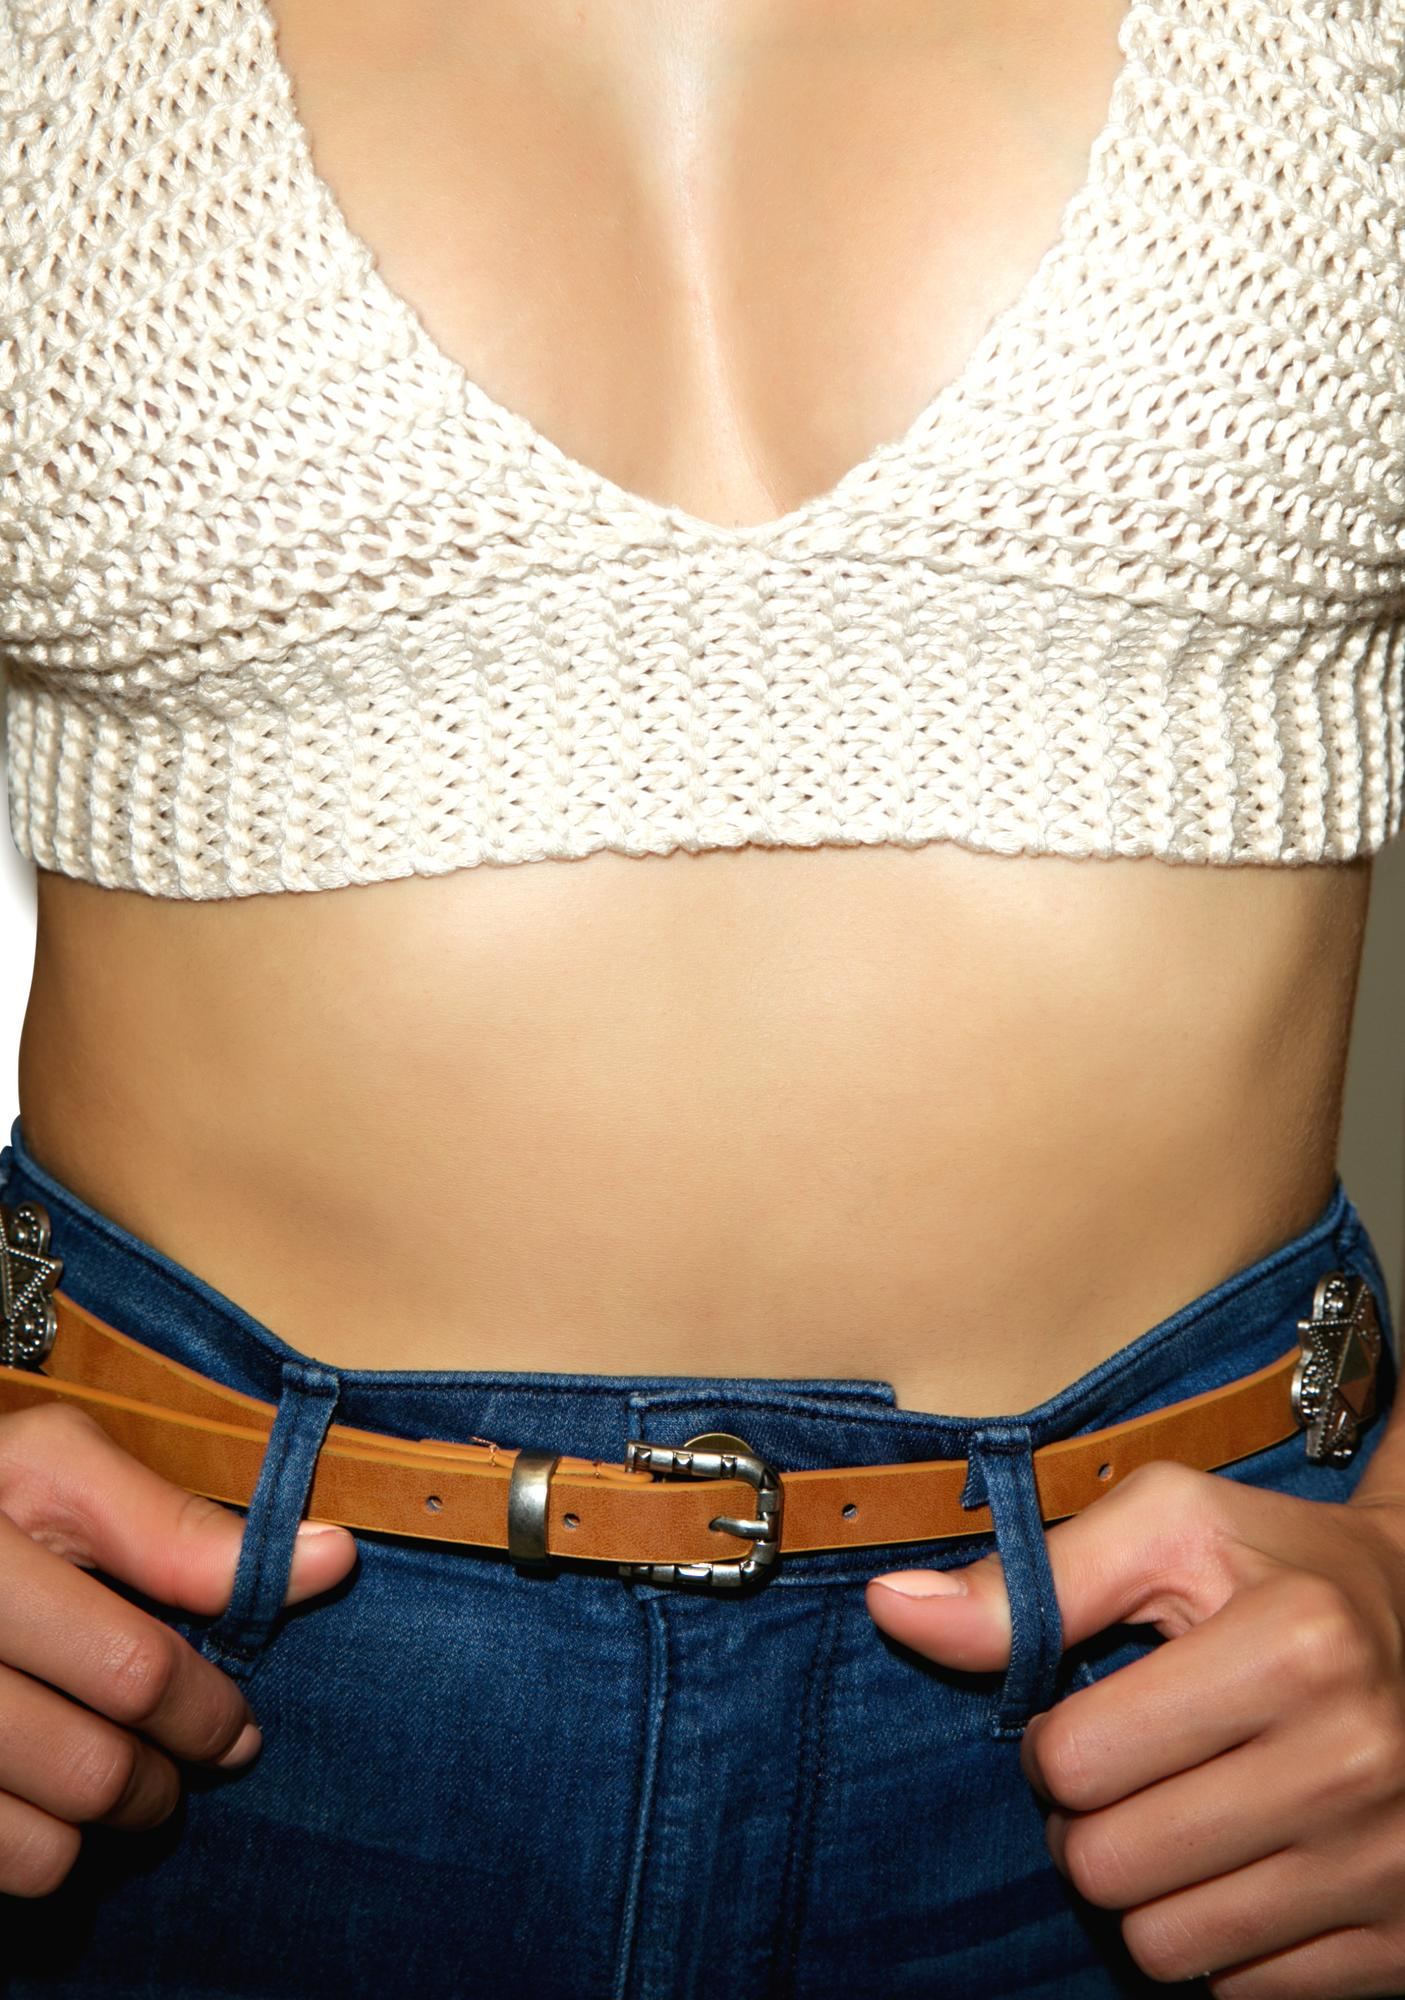 Tanned Way Out West Wrap Belt